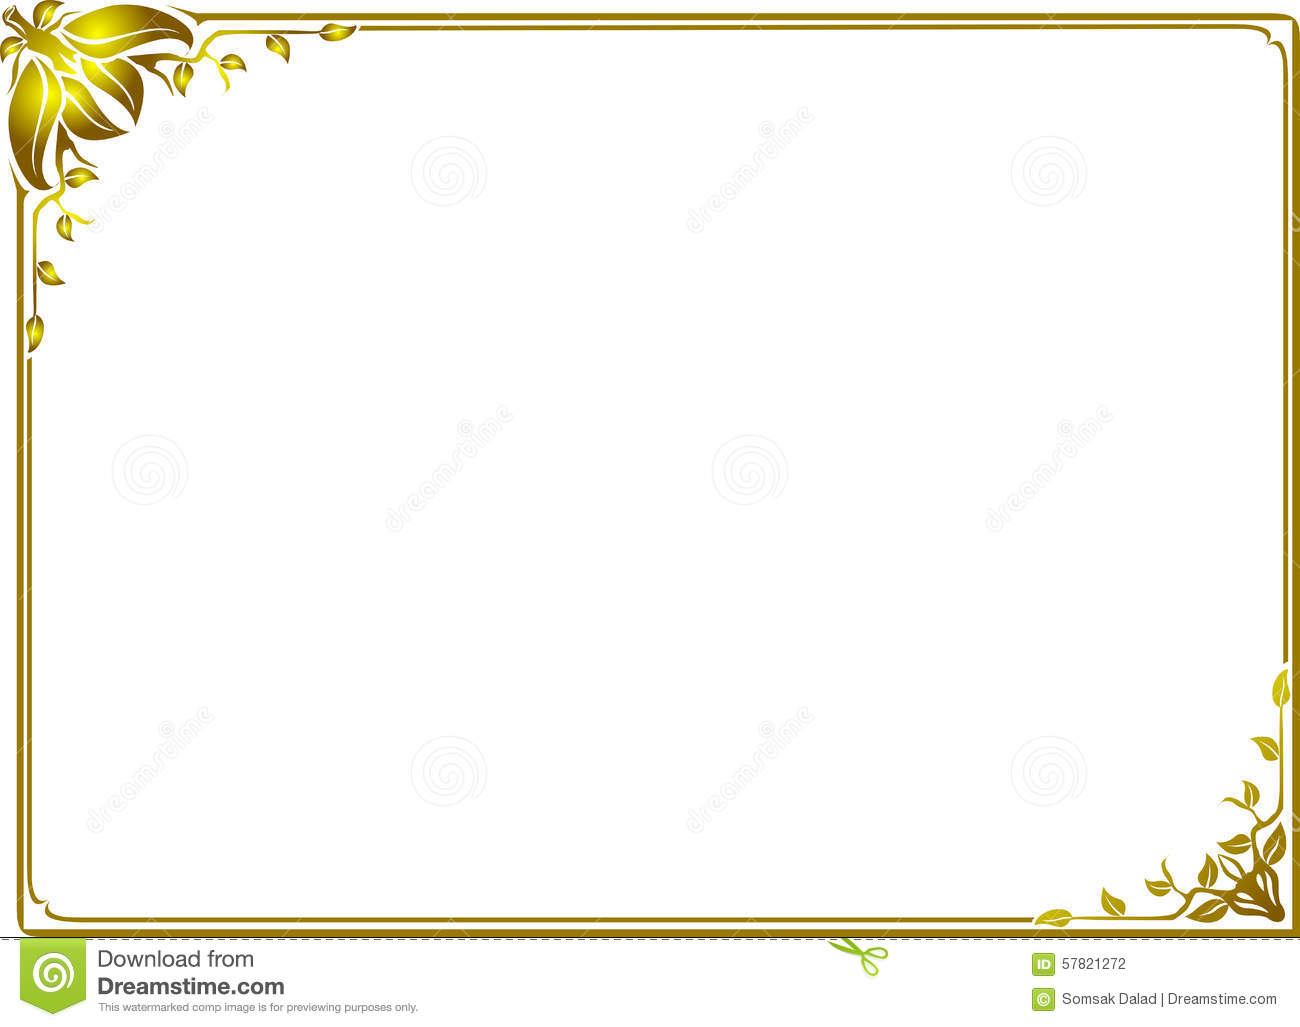 Gold leaf frame floral stock vector. Illustration of ornate - 57821272